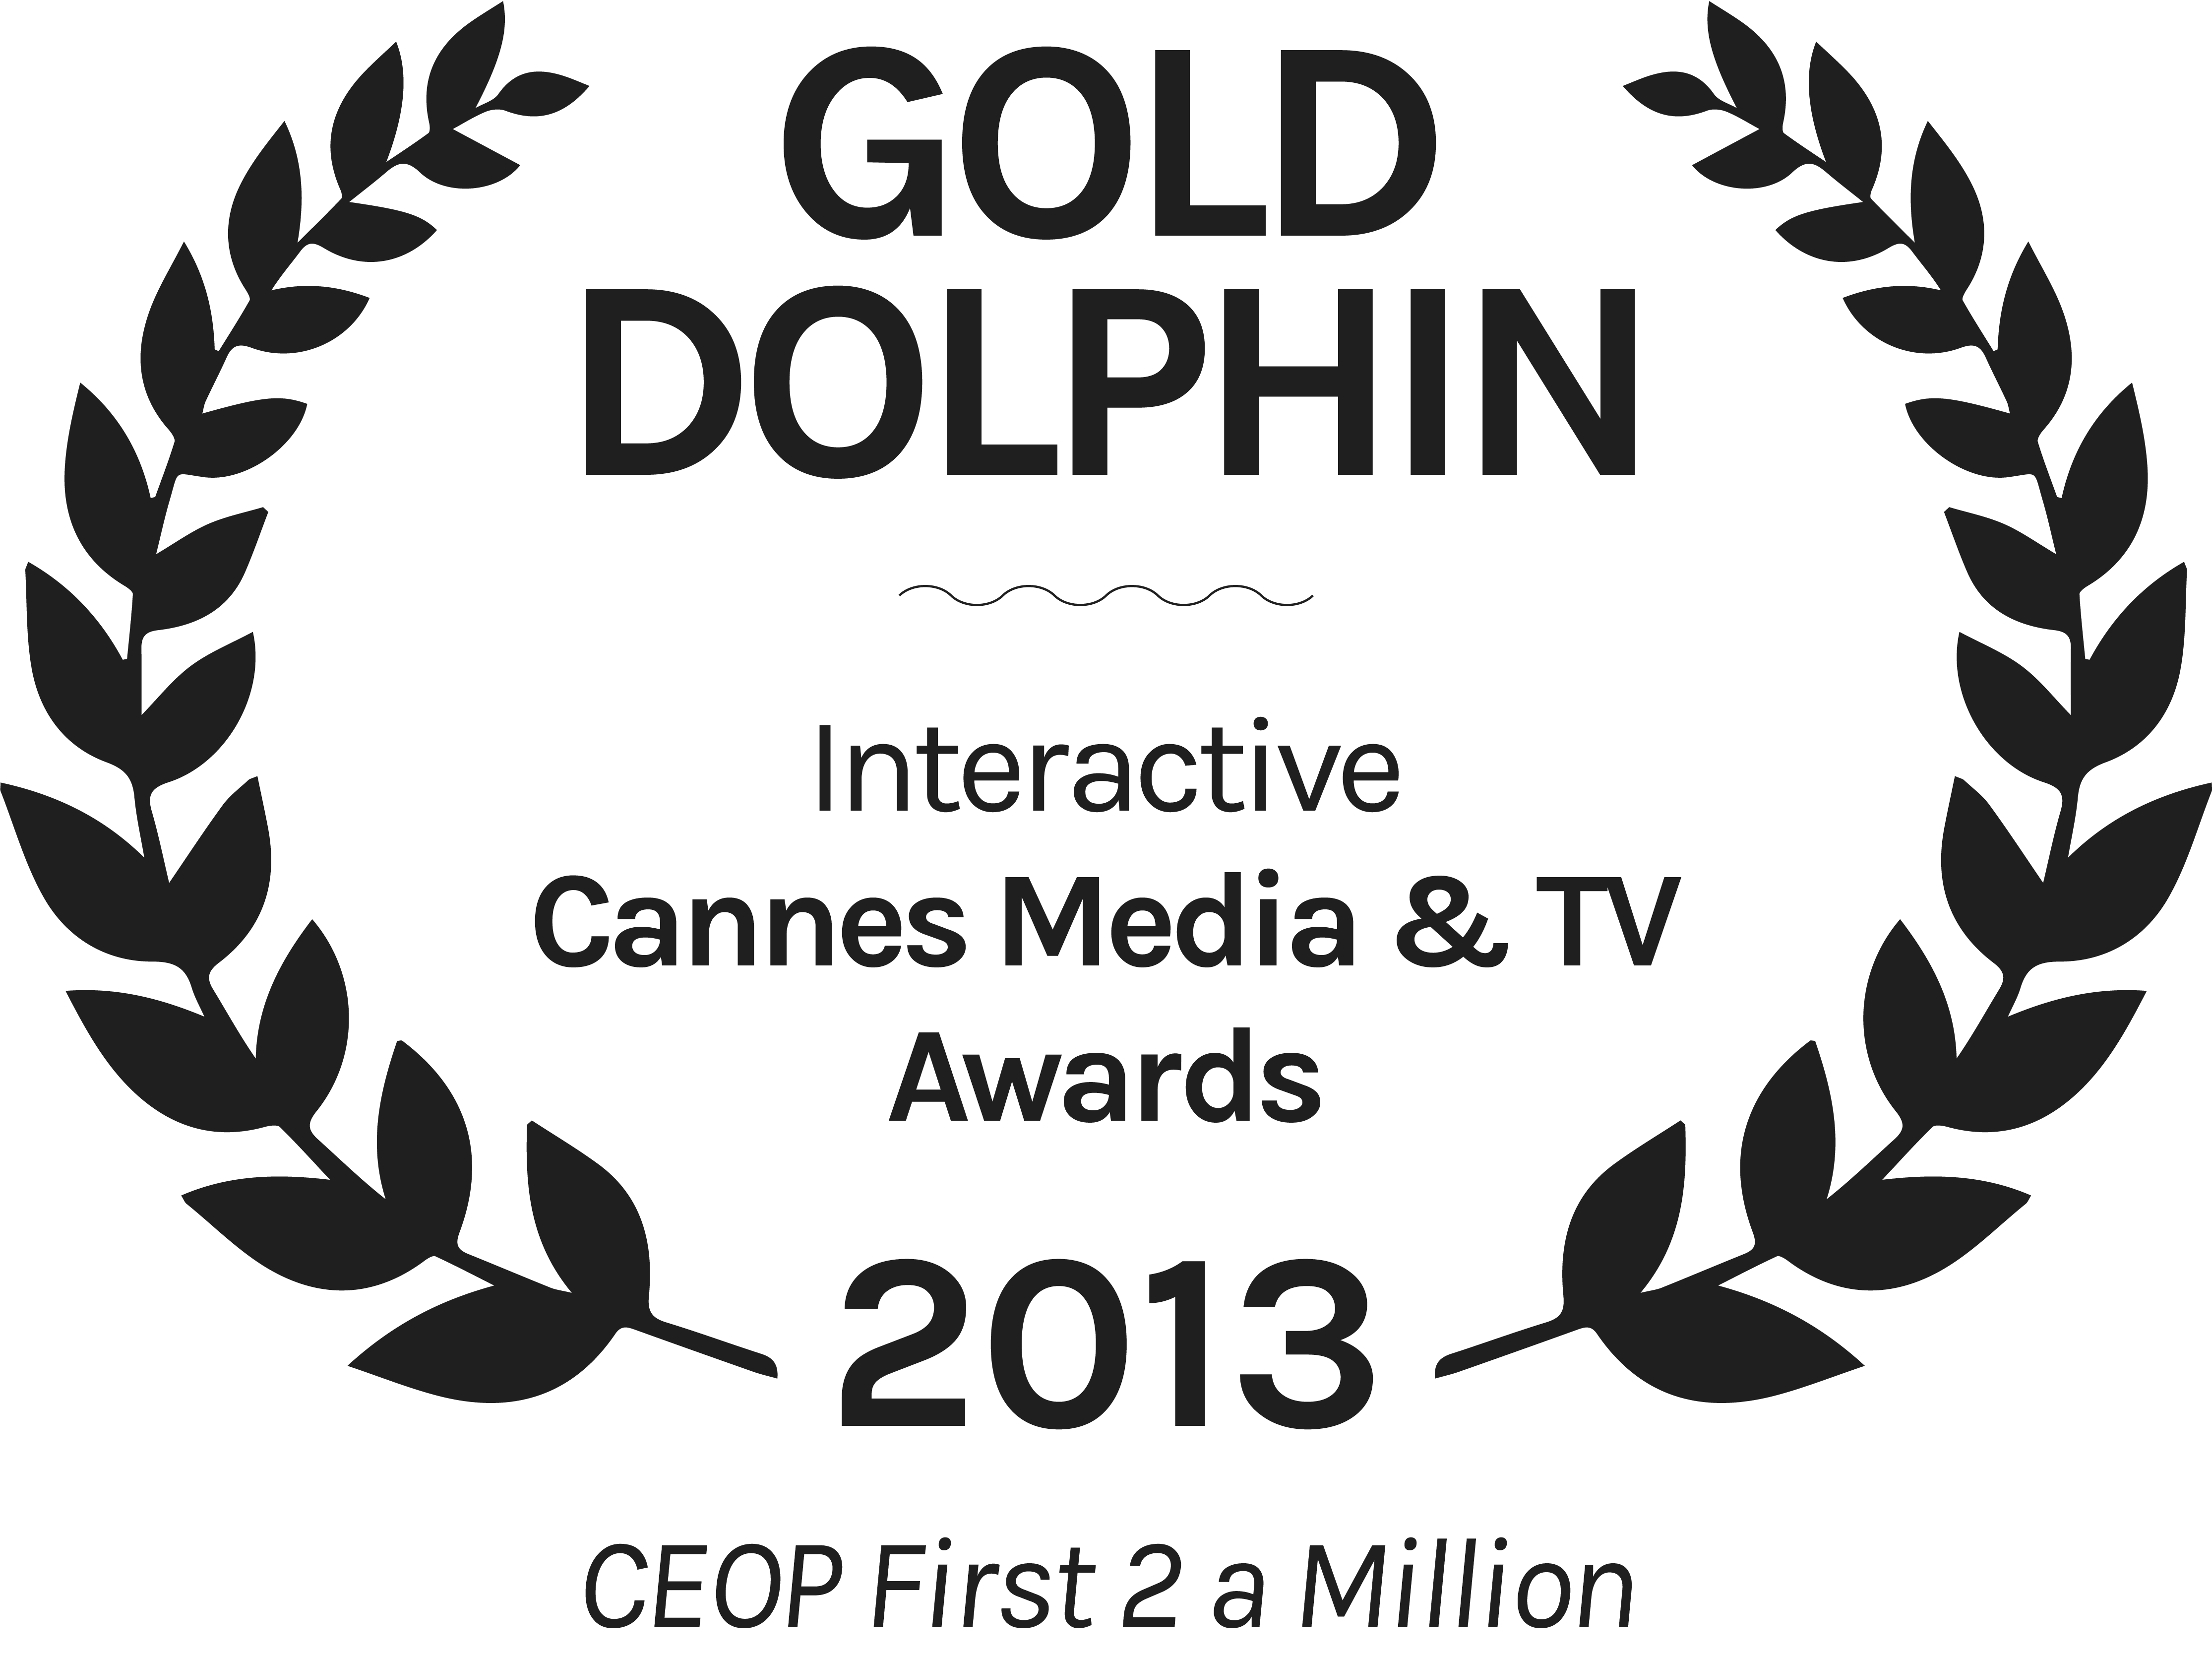 CEOP-First-2-a-Million-Gold-Dolphin-Interactive-Cannes-Media-TV-Awards-2013.png